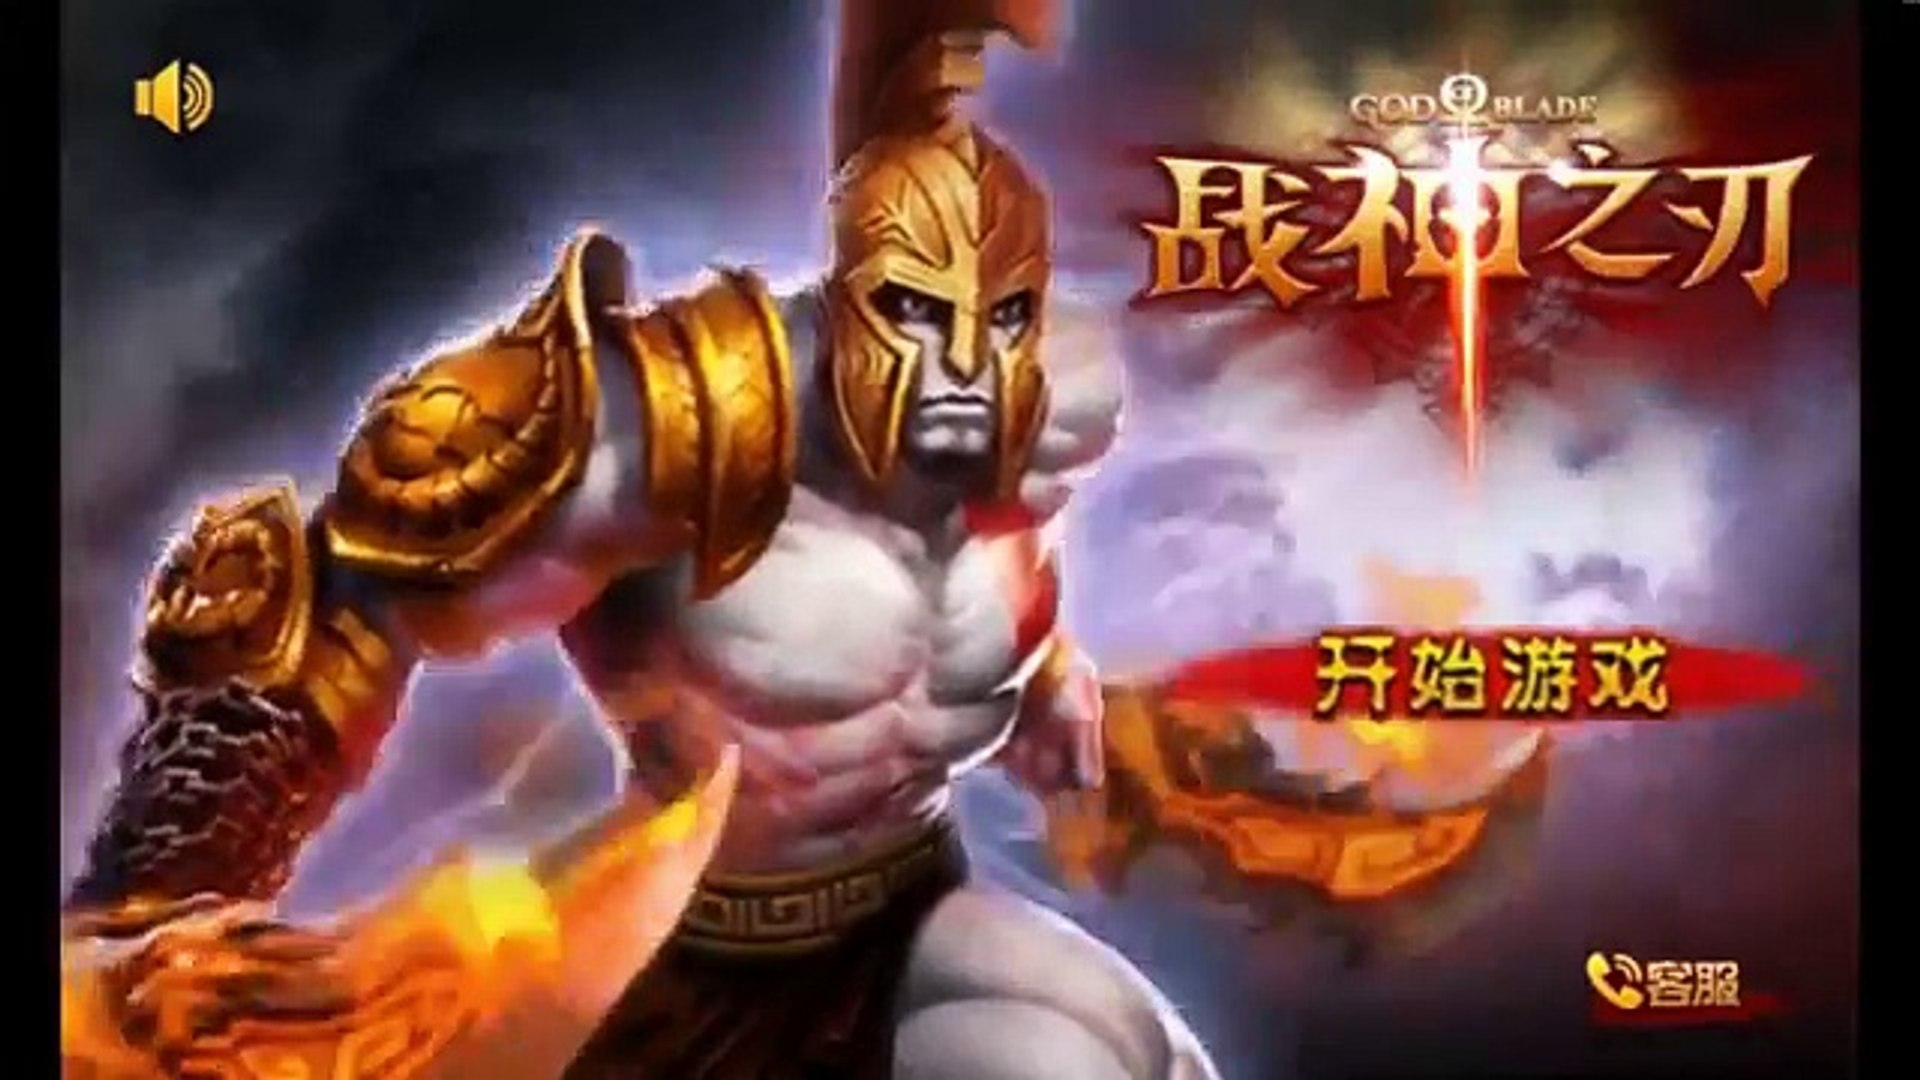 God Of Blade (God of War) Android - Gameplay + Download APK